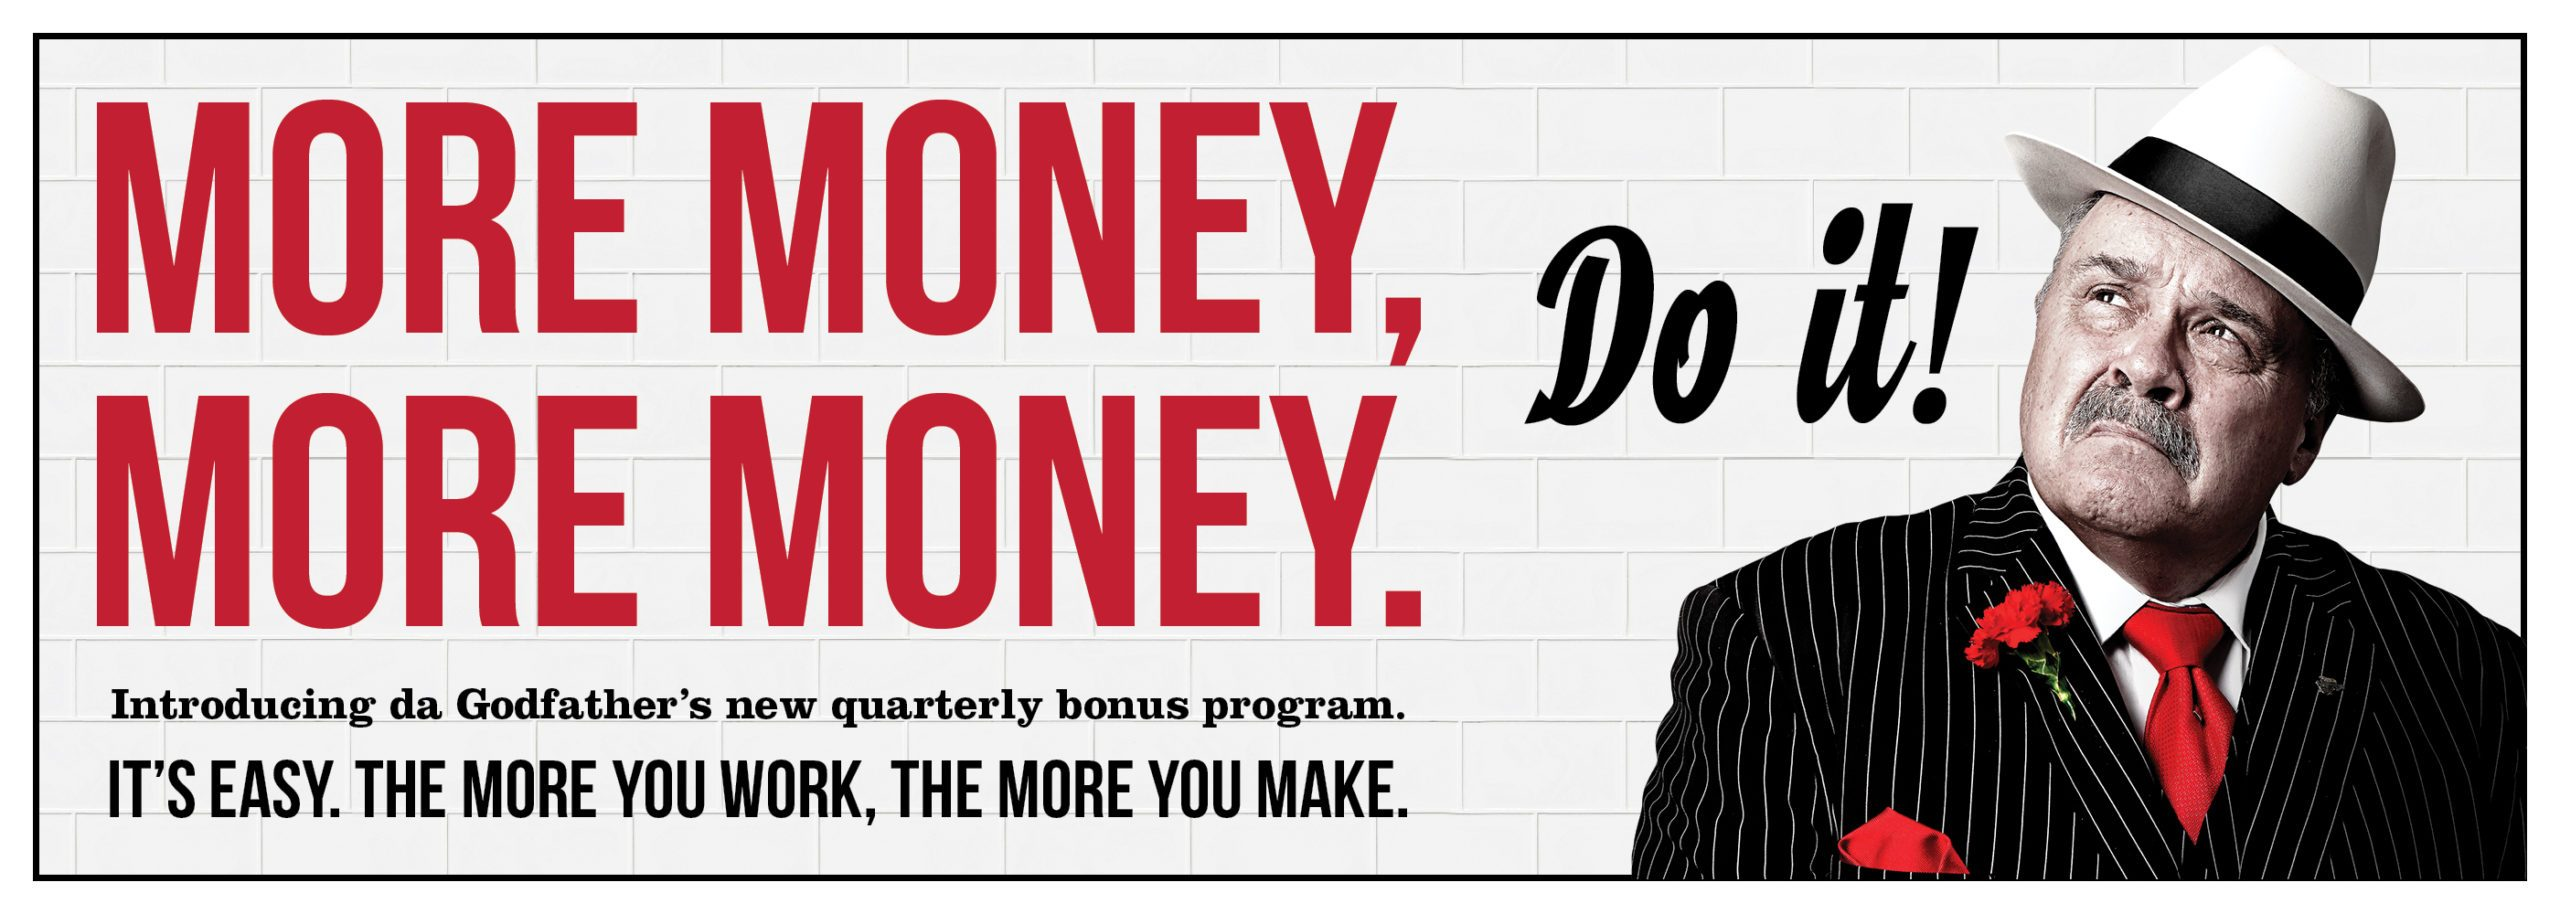 More Money. More Money. It's easy. The more you work, the more you make.